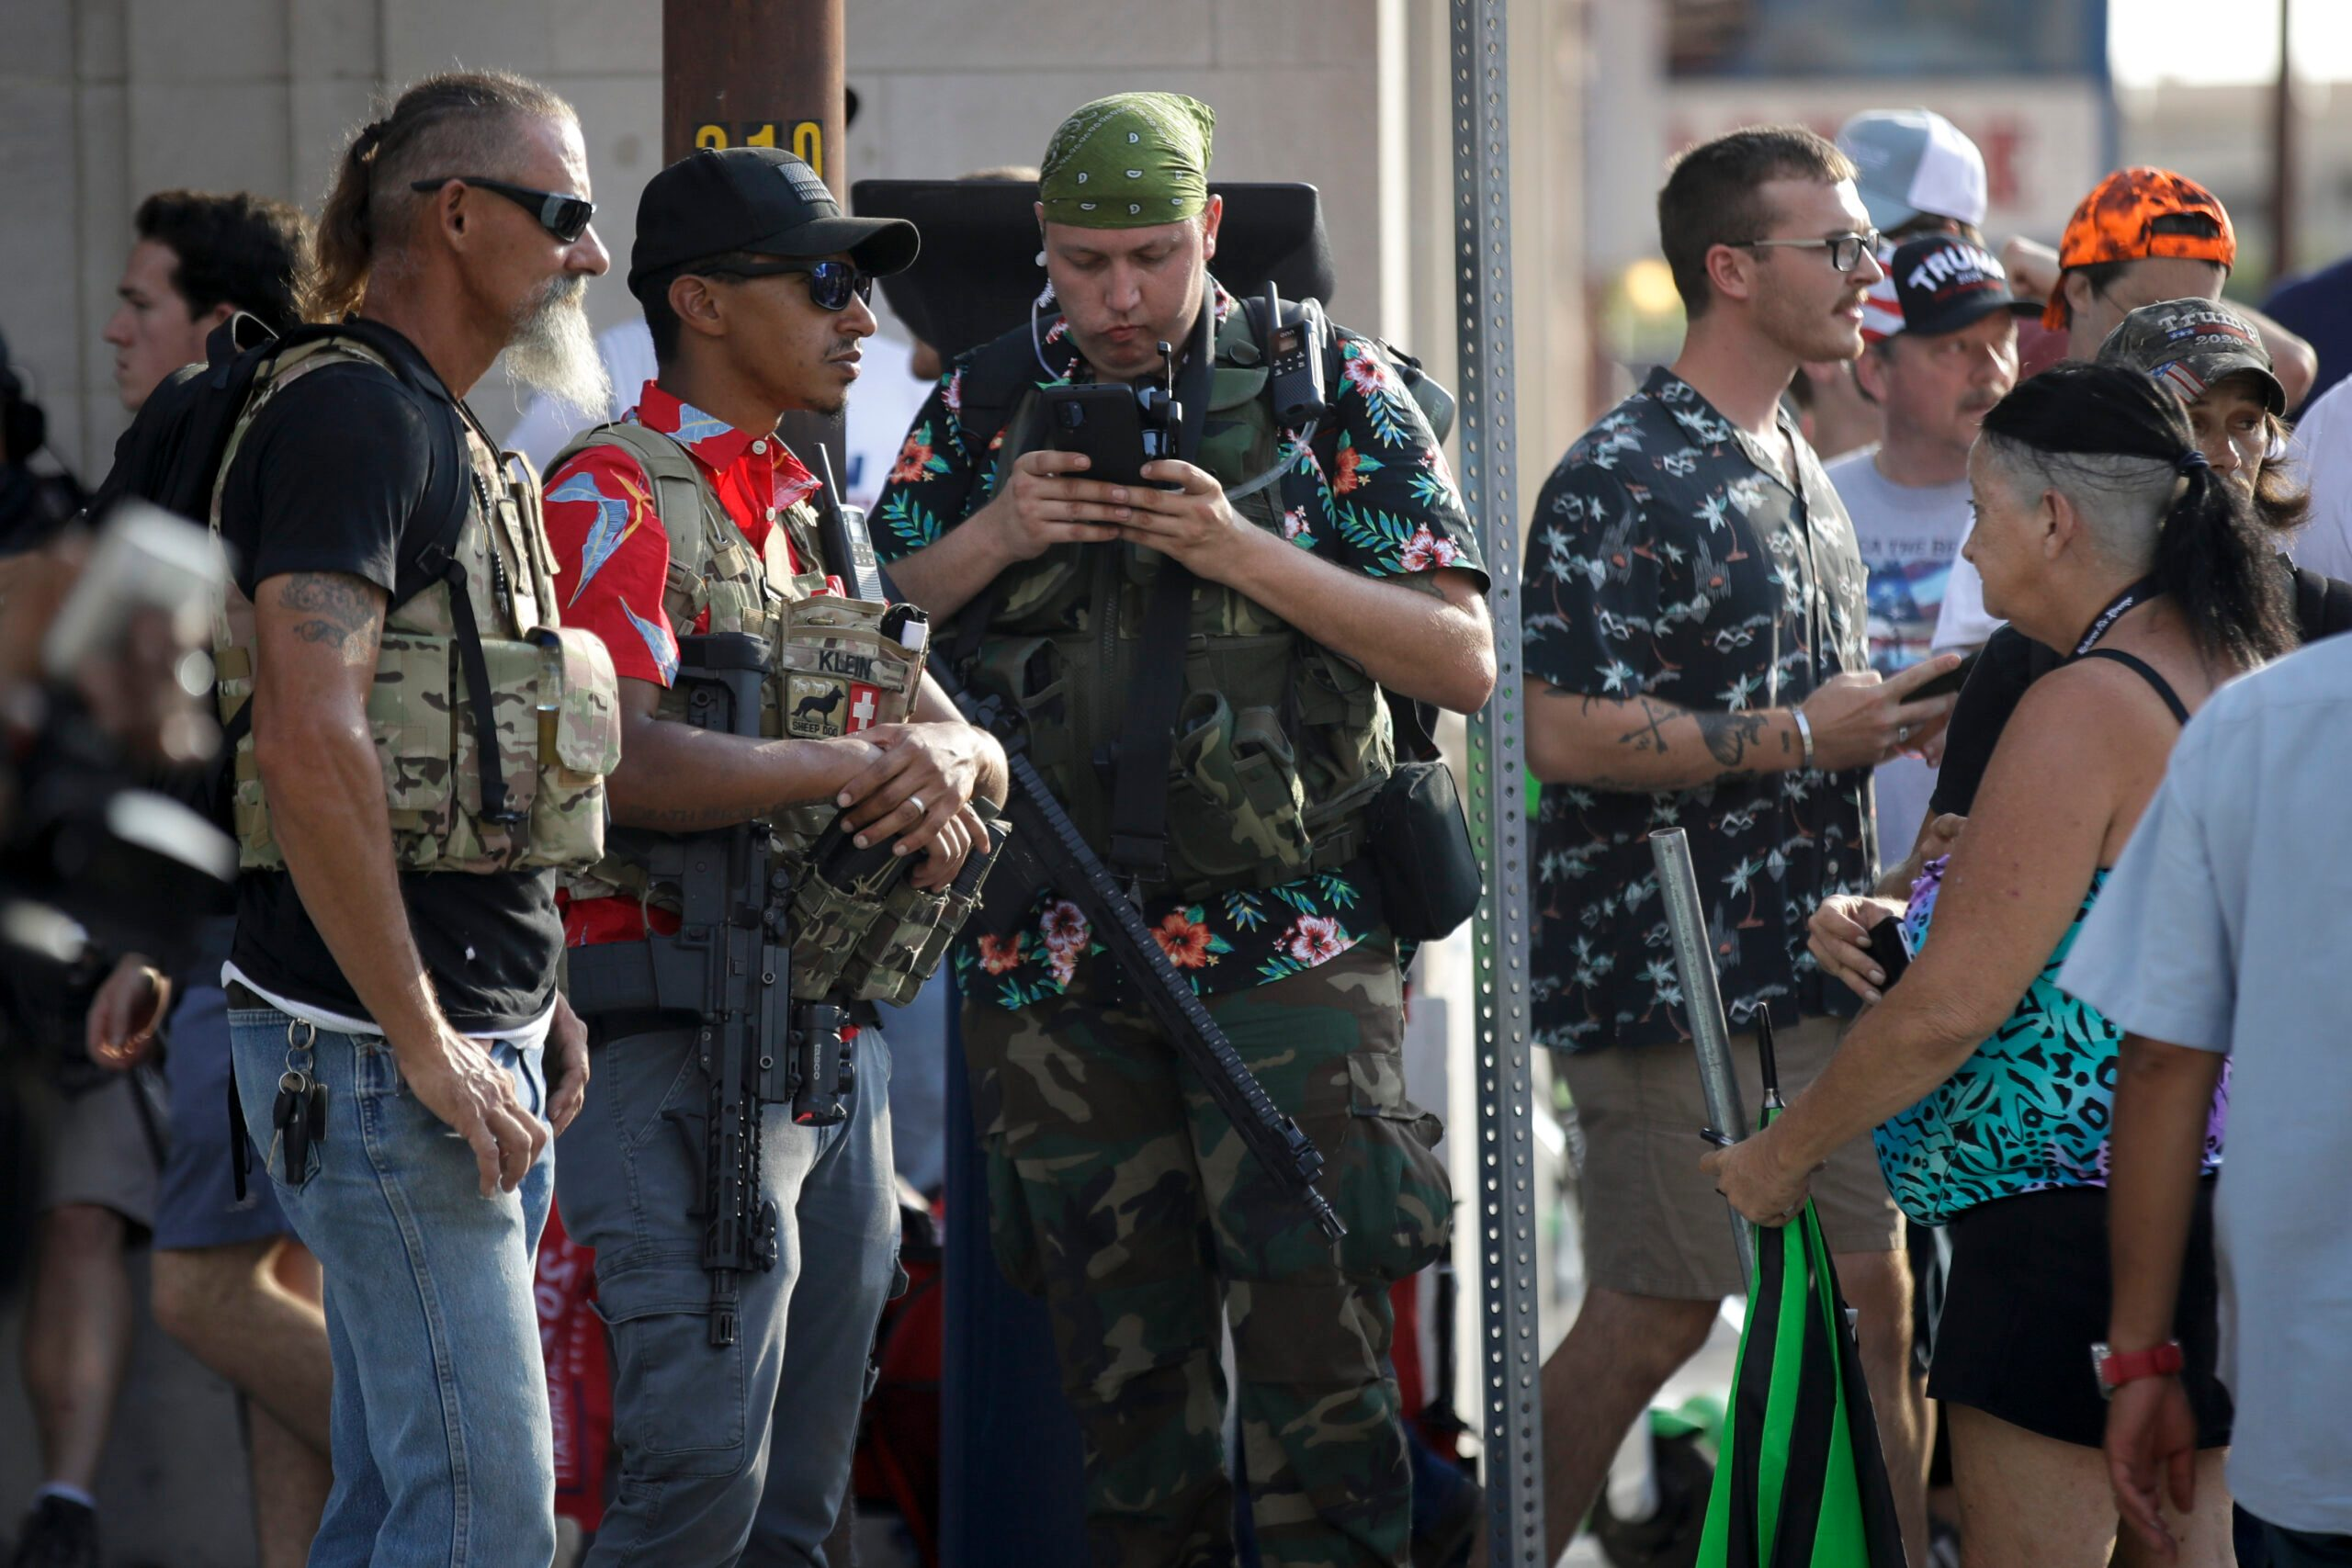 Aloha Shirts on 'Boogaloos' Link Symbol of Peace to Violence - snopes